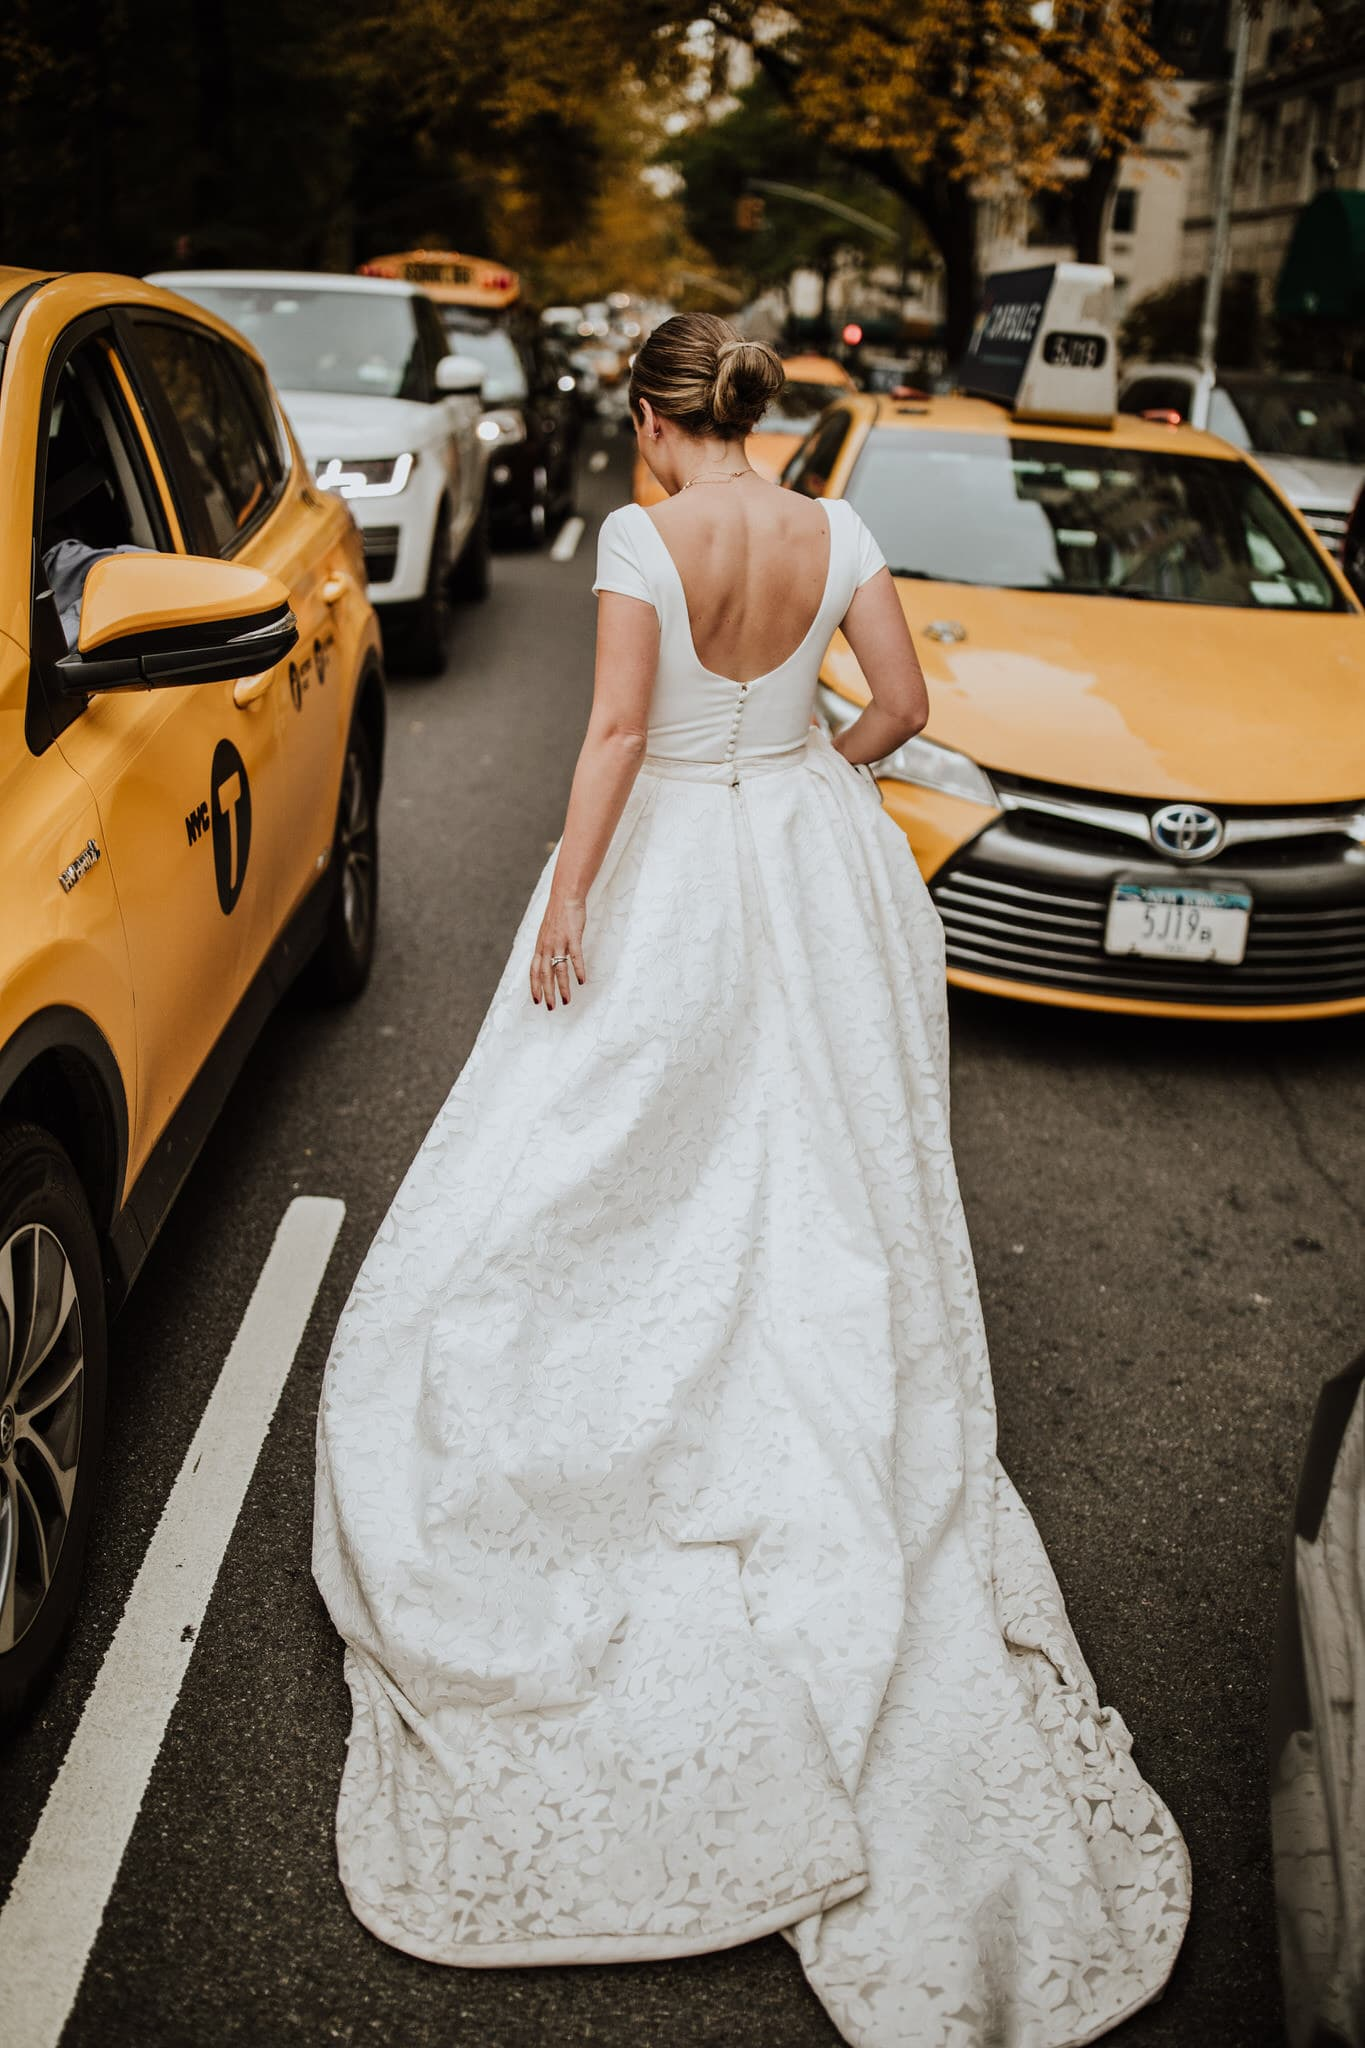 The bride catches a taxi near Central Park, New York City. Wedding Photographer Brent Calis.